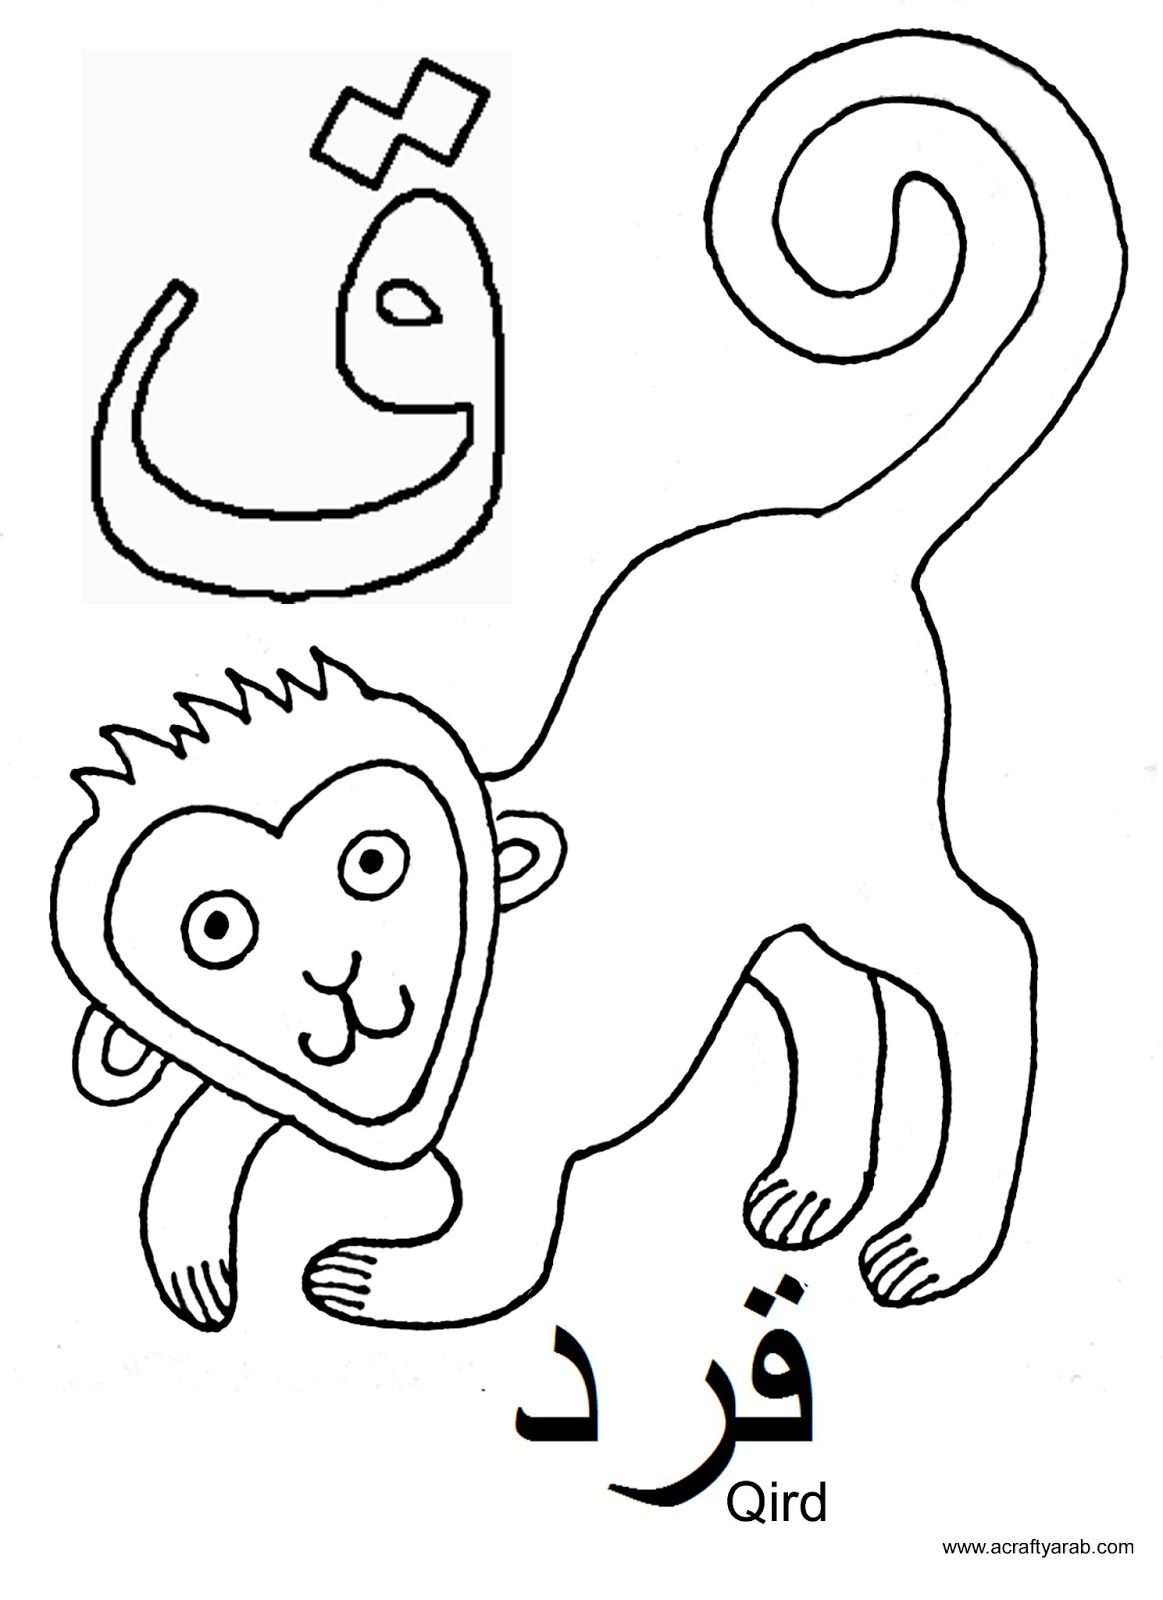 A Crafty Arab Arabic Alphabet Coloring Pages F Is For Qird